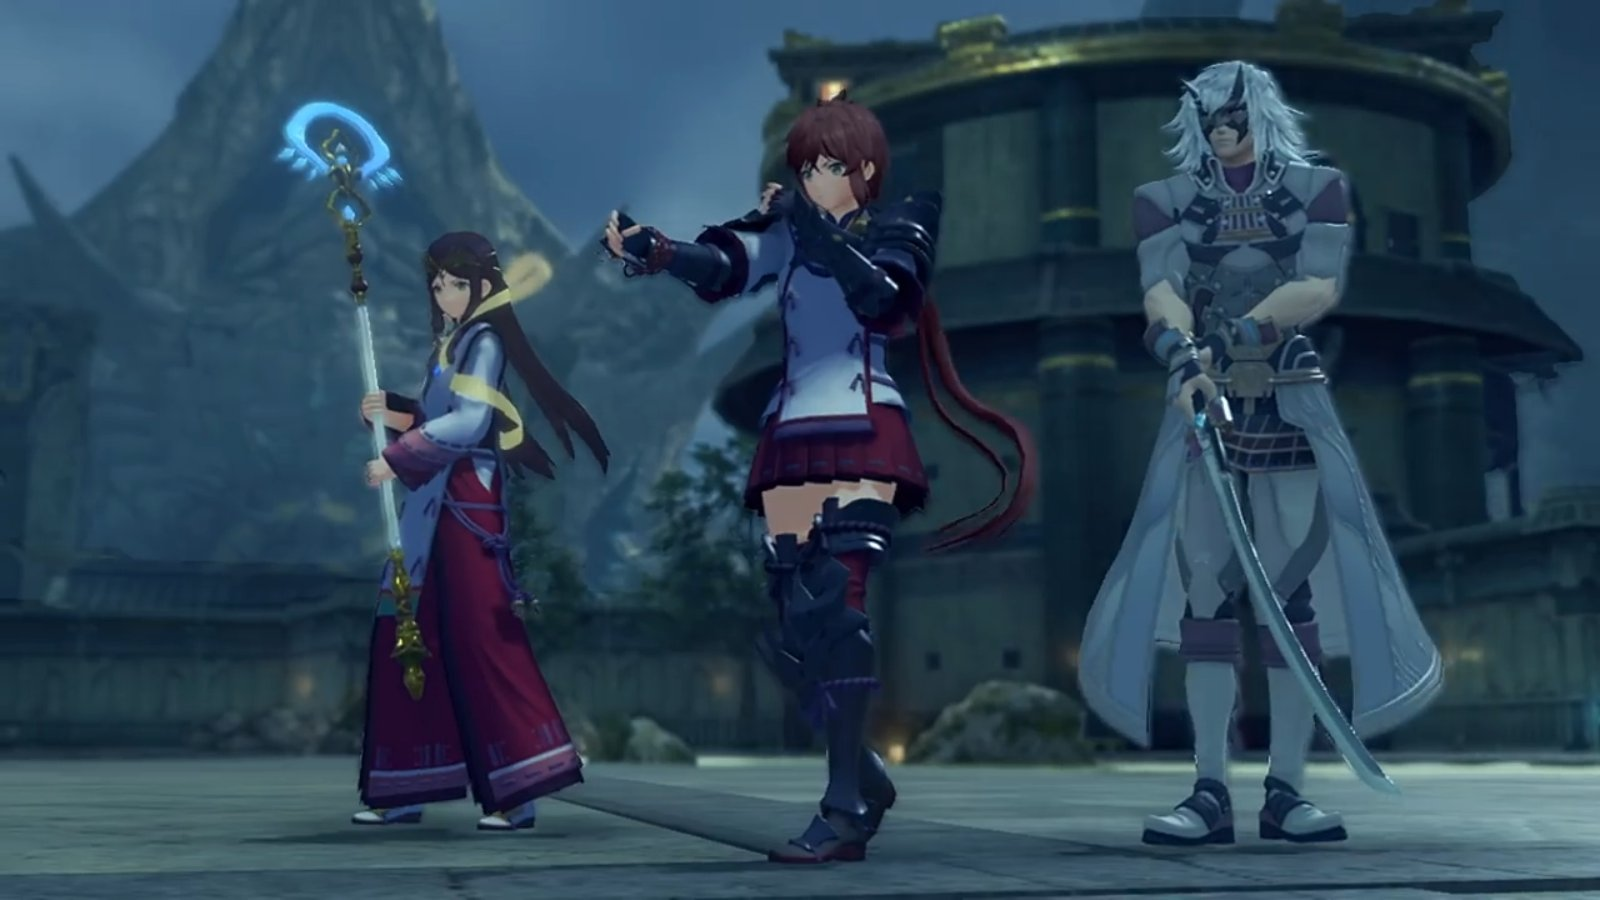 Xenoblade Chronicles 2 Torna The Golden Country Receives New